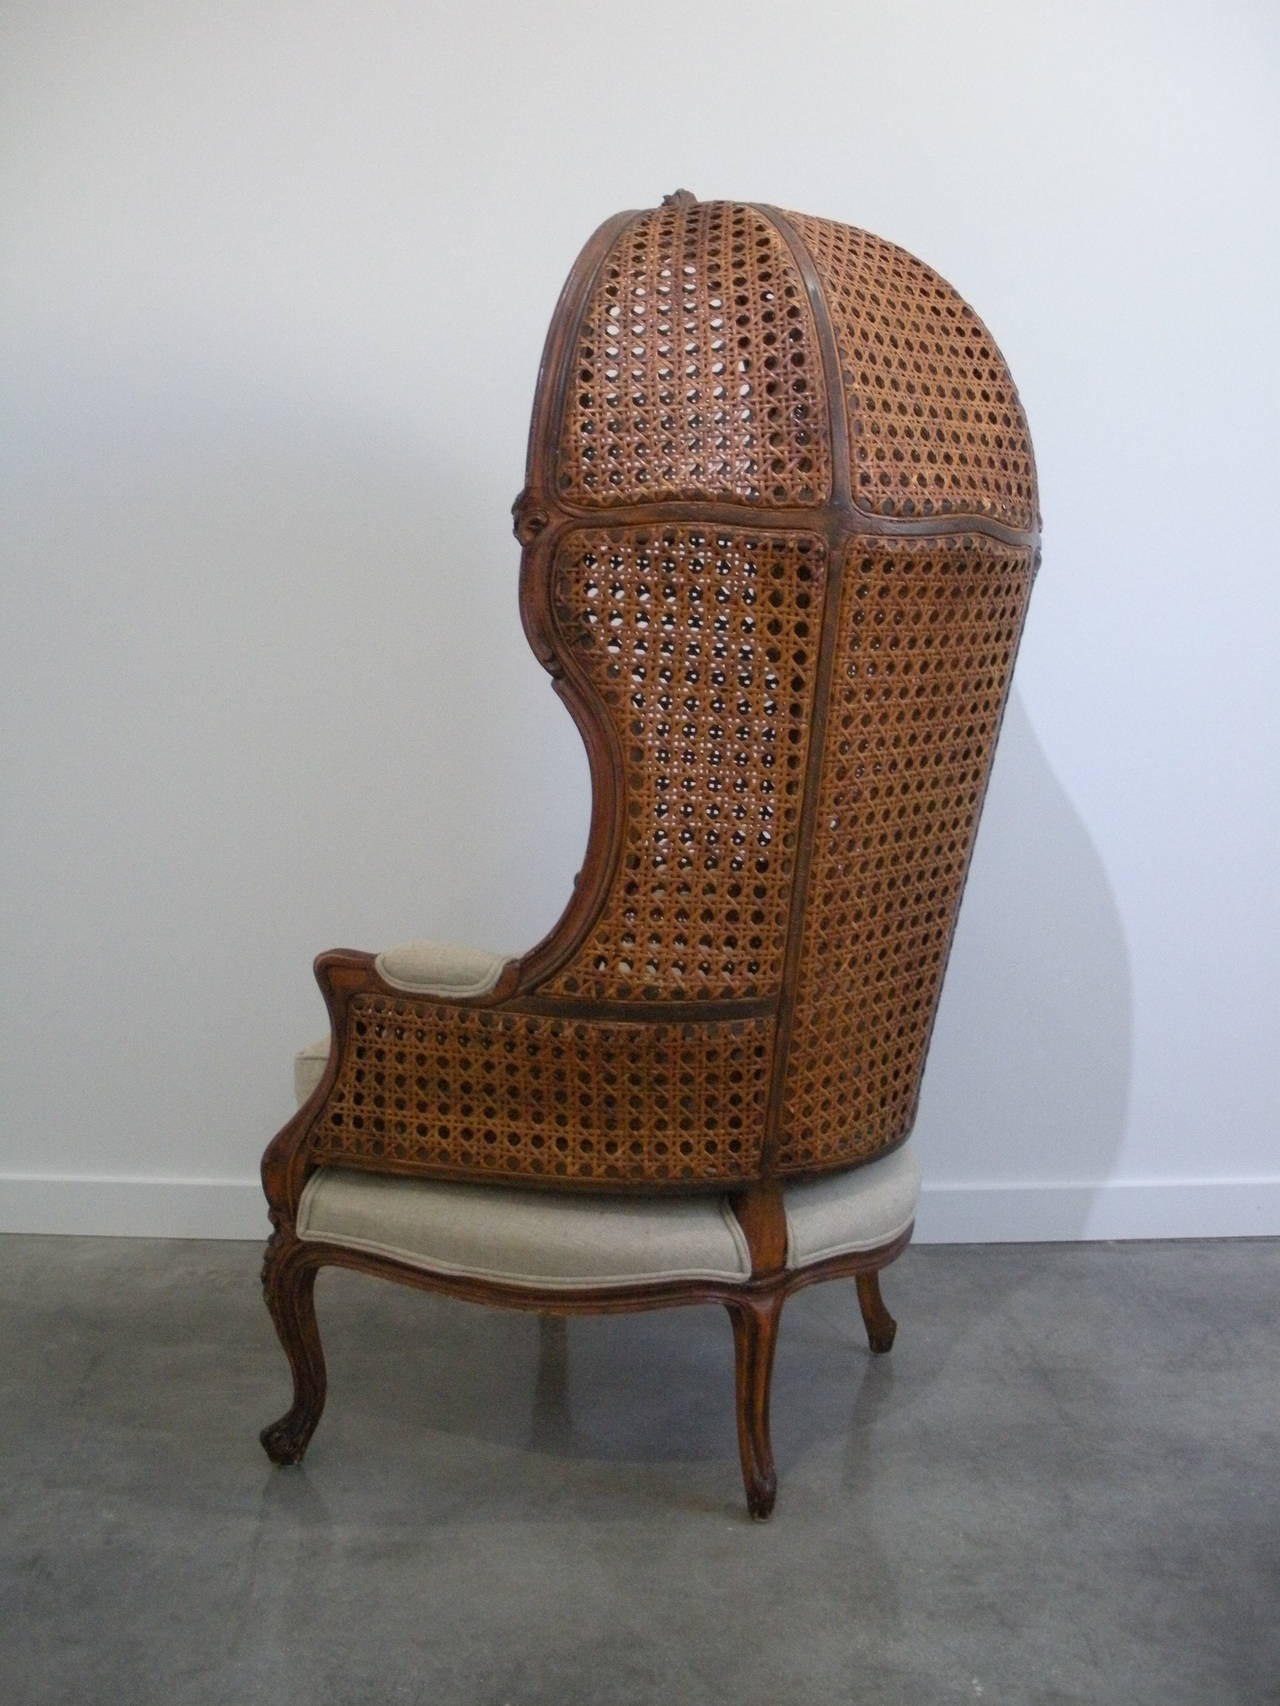 Louis Xv Style Porter Chair With French Caning At 1stdibs